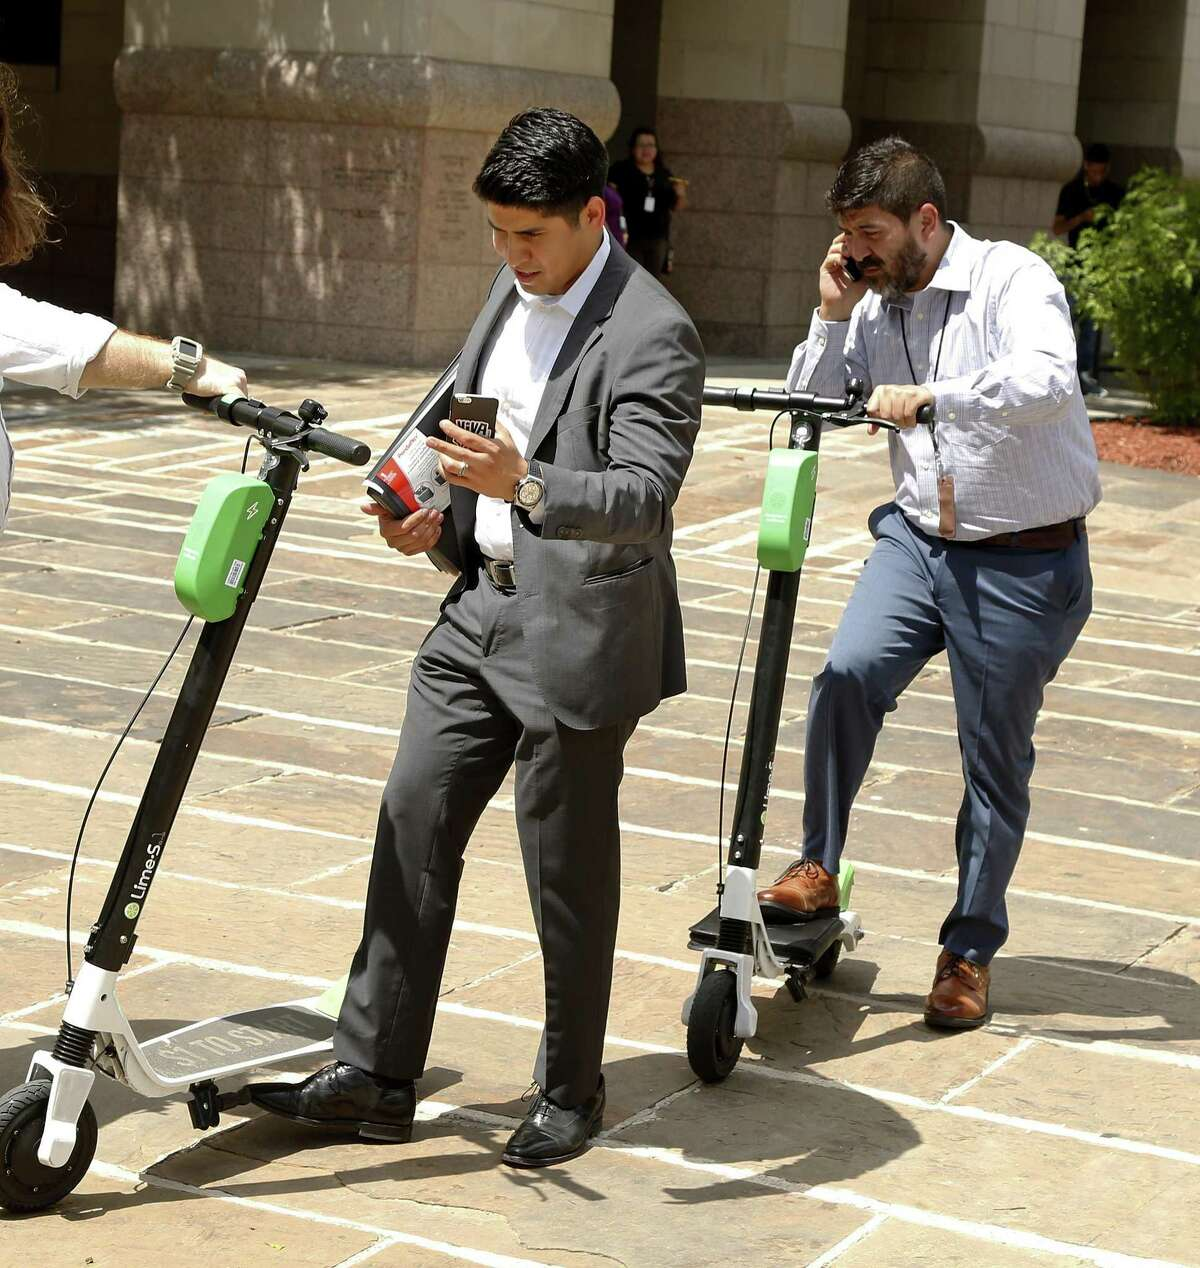 Lime scooters arrived on July 25. They have a fleet of 345 scooters to date.